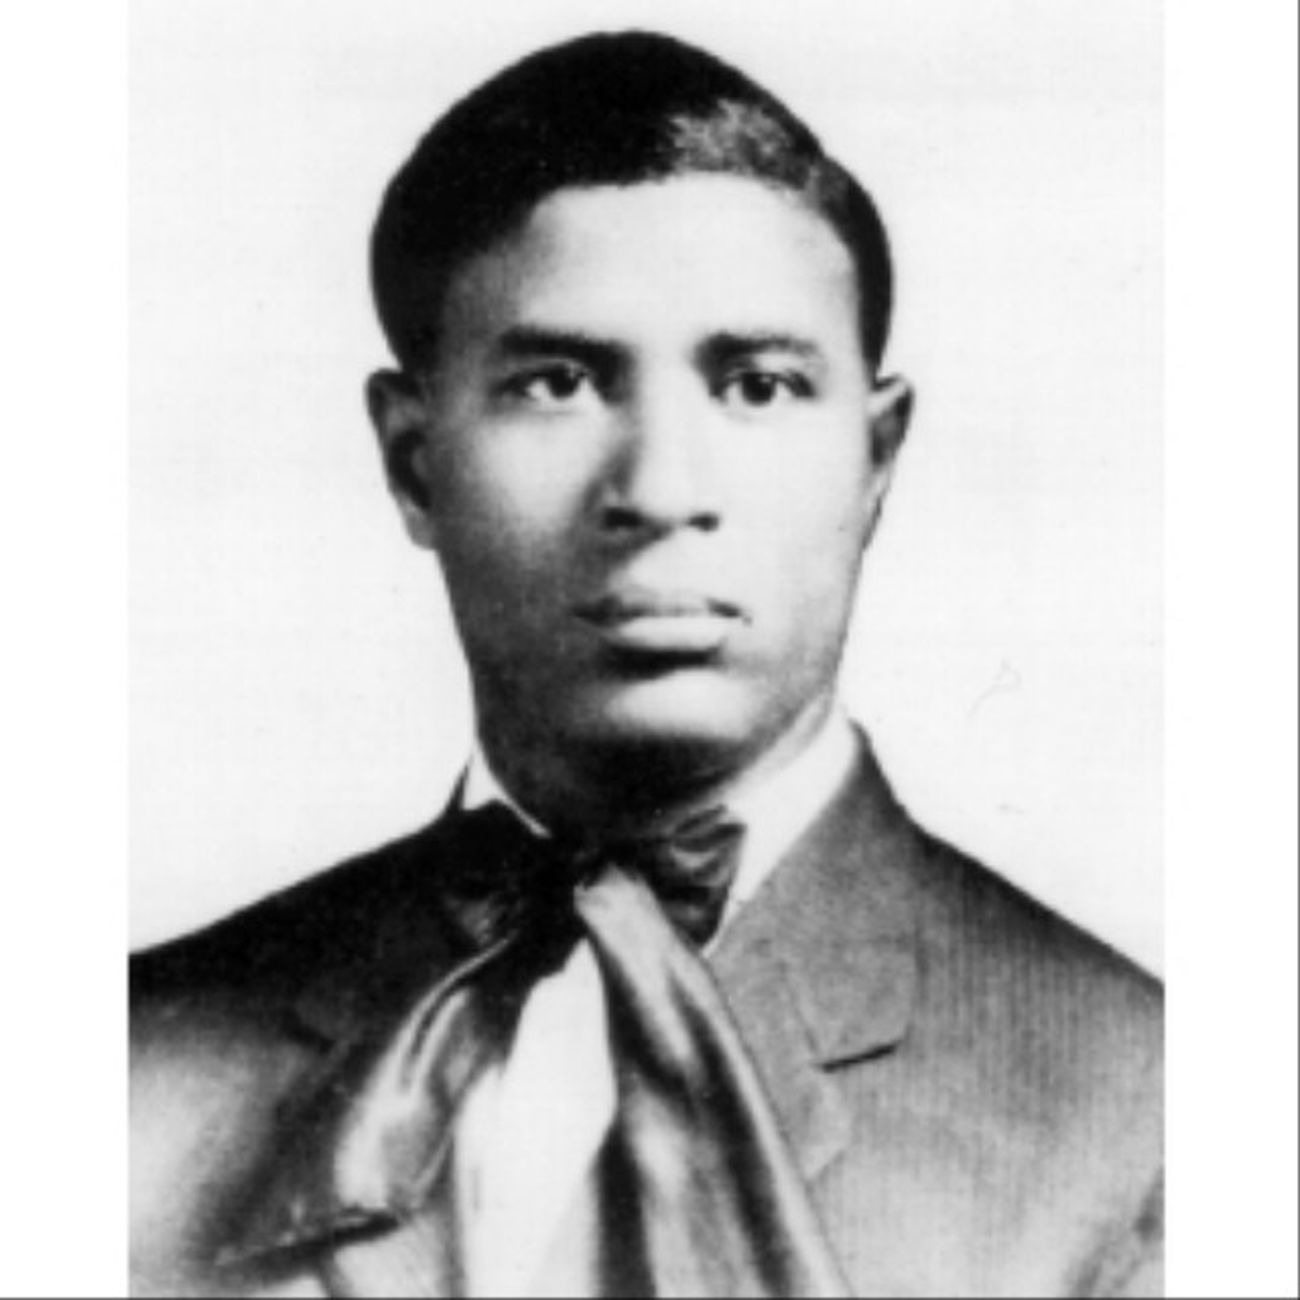 "Garrett Augustus Morgan, Sr. (March 4, 1877 – July 27, 1963) was an African-American inventor and community leader. Morgan's most notable invention was a traffic signal. Garrett's invention was a hand-cranked mechanical sign system using signs that could be switched relatively easily by a traffic control officer. His device was relatively simple, yet had key additional safety features that many others at the time did not have. In addition to having ""stop"" and ""go"" indicators, it had an ""all stop"" signal that could be used to clear the intersection to allow pedestrians to cross or to stop cross-traffic before signaling a different direction to proceed. Blackhistory Blackhistorymonth"